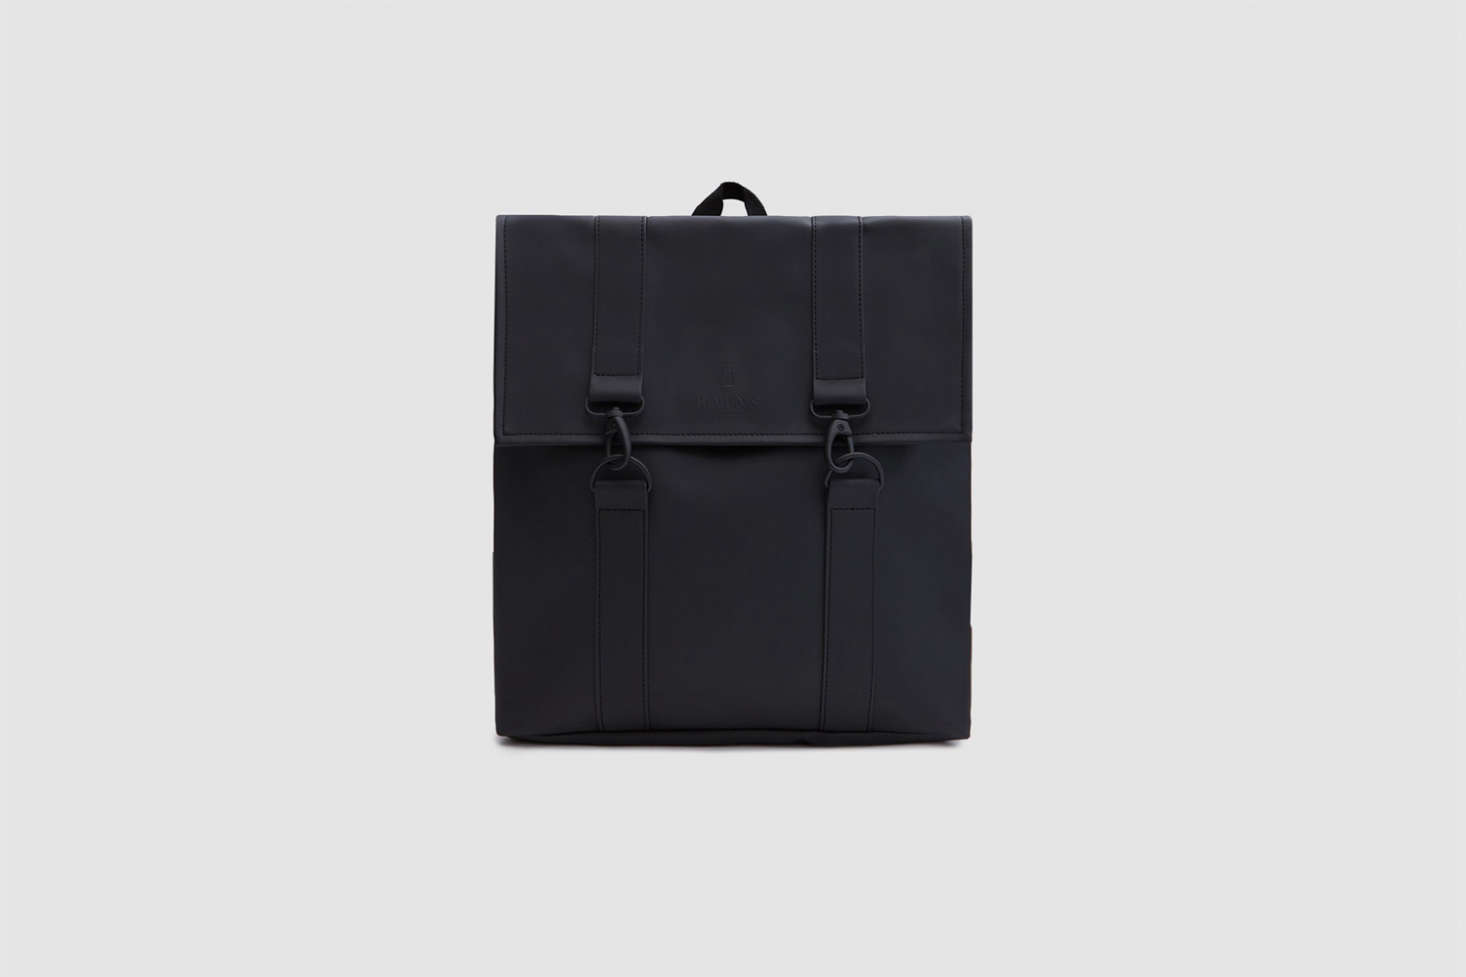 The Rains MSN Bagin black has a matte finish; $95 at Need Supply.